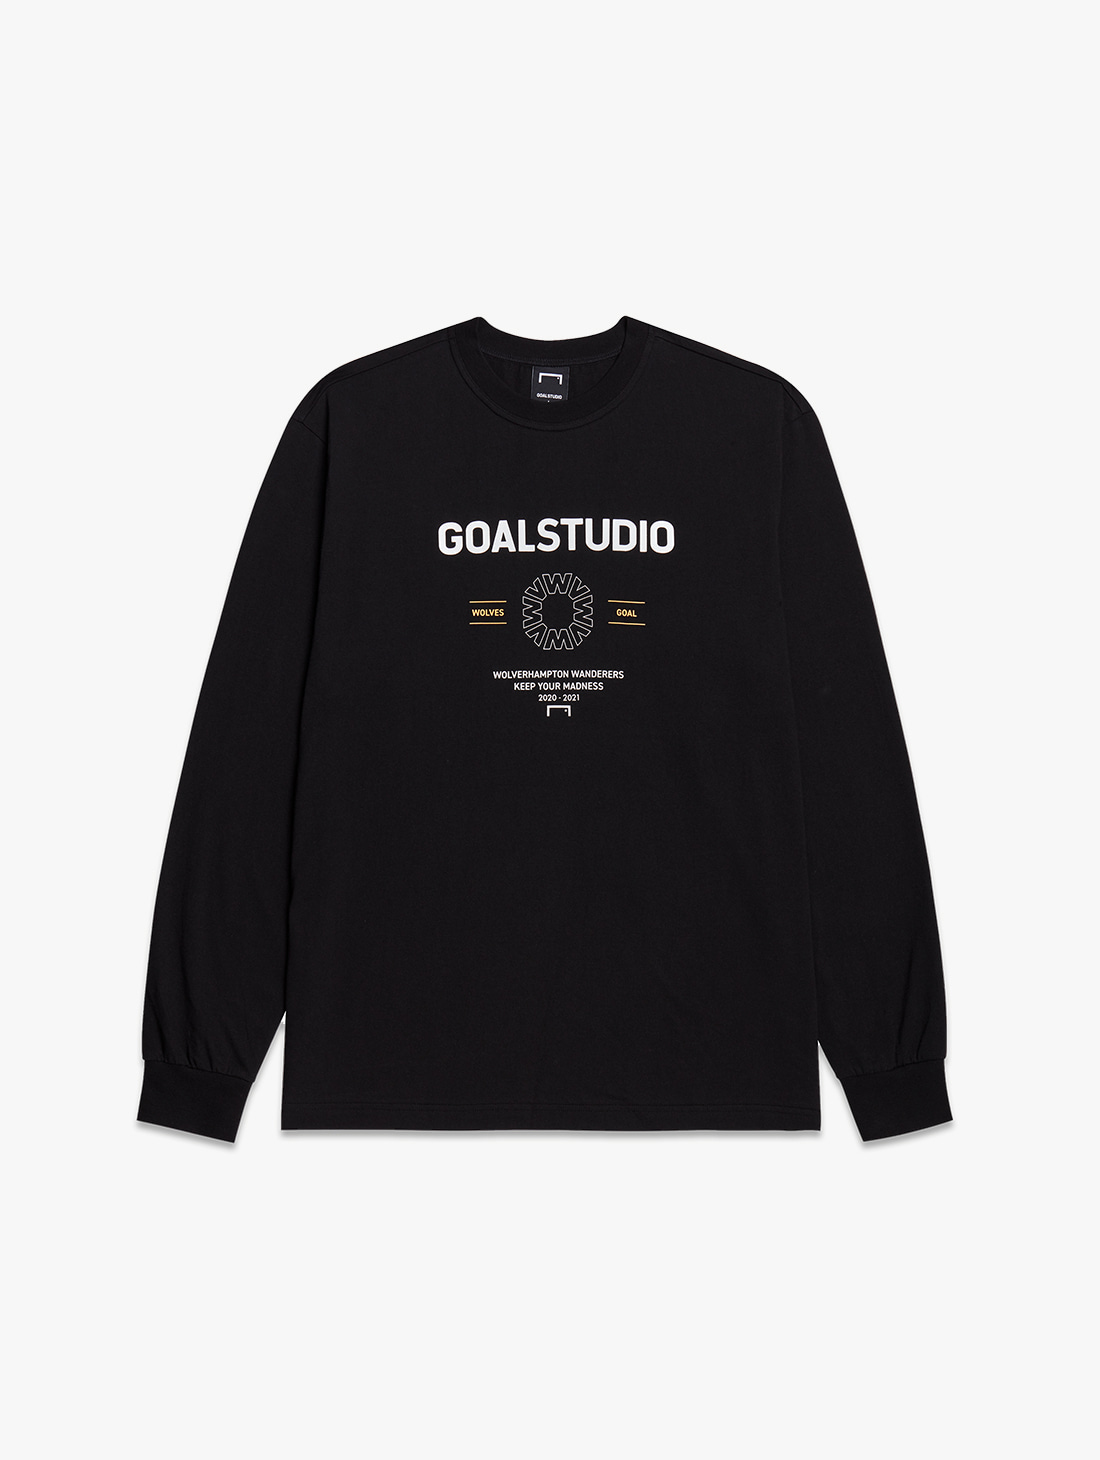 [PRE-ORDER 10% OFF] WWFC LONG SLEEVE SHIRT